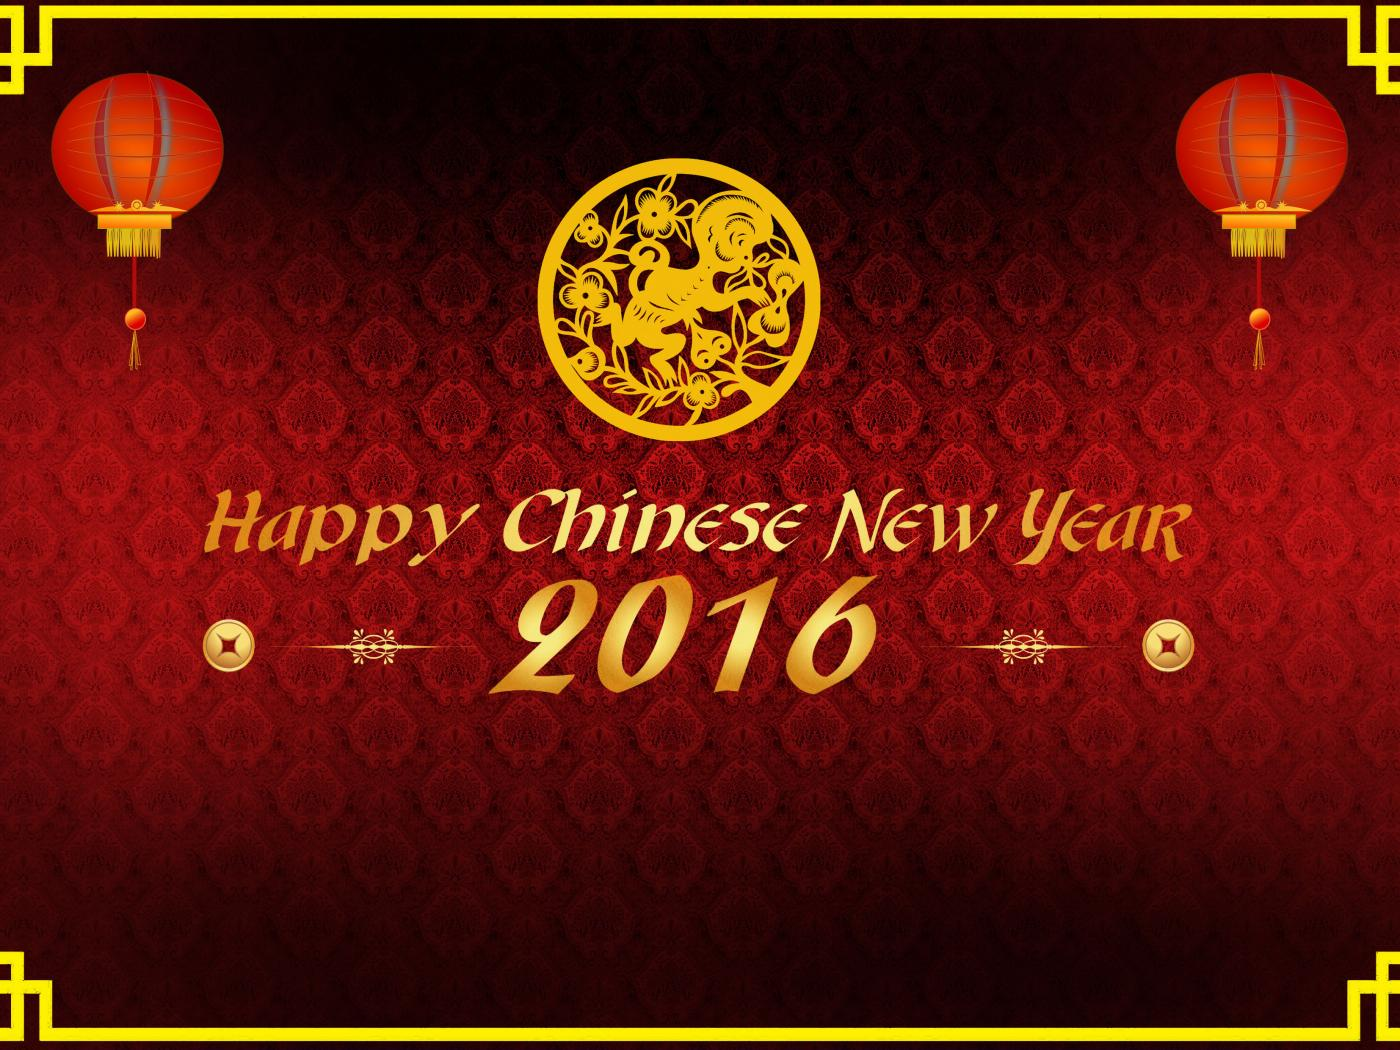 chinese new year 2016 wallpaper year of monkey hd